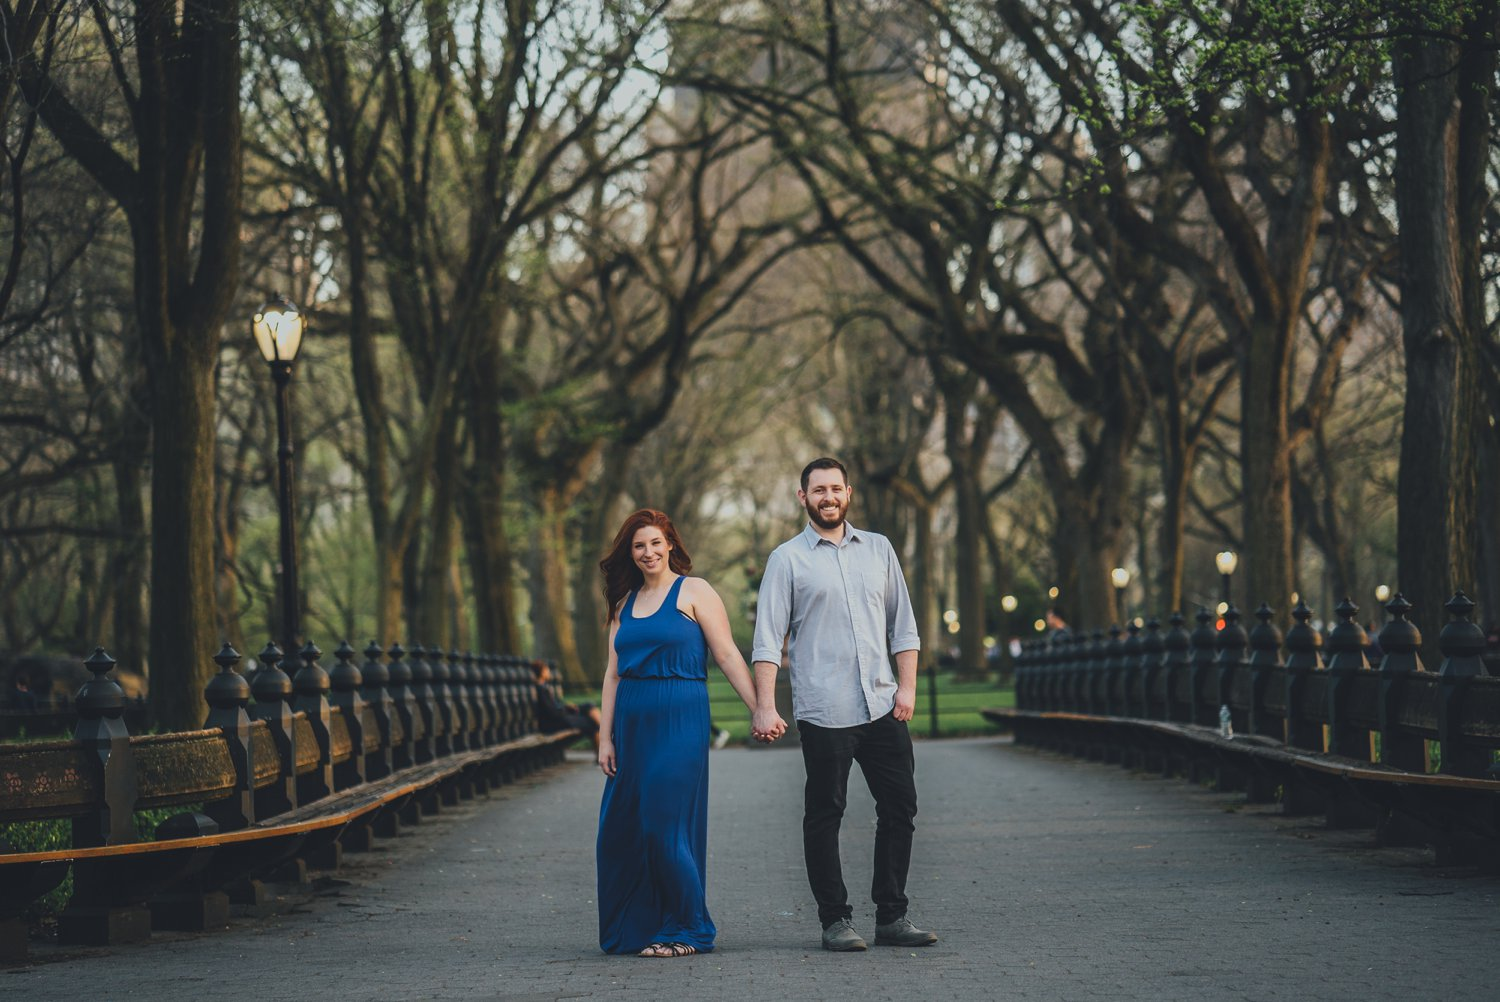 56NYC-NJ-ENGAGEMENT-PHOTOGRAPHY-BY-INTOTHESTORY-MOO-JAE.JPG